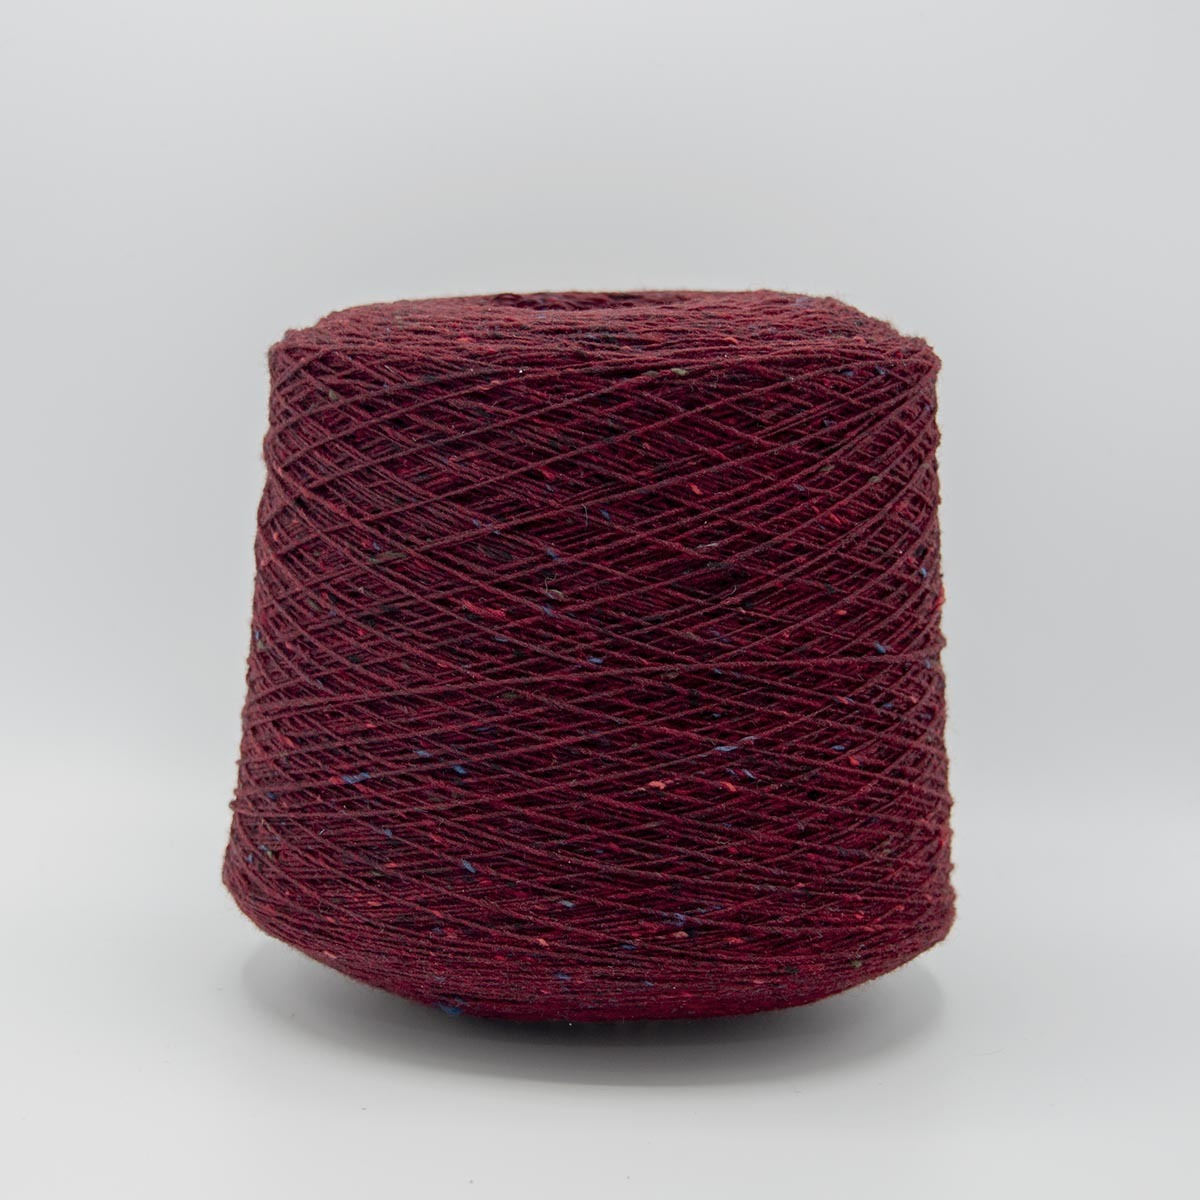 Knoll Yarns Soft Donegal (одинарный твид) -  5524